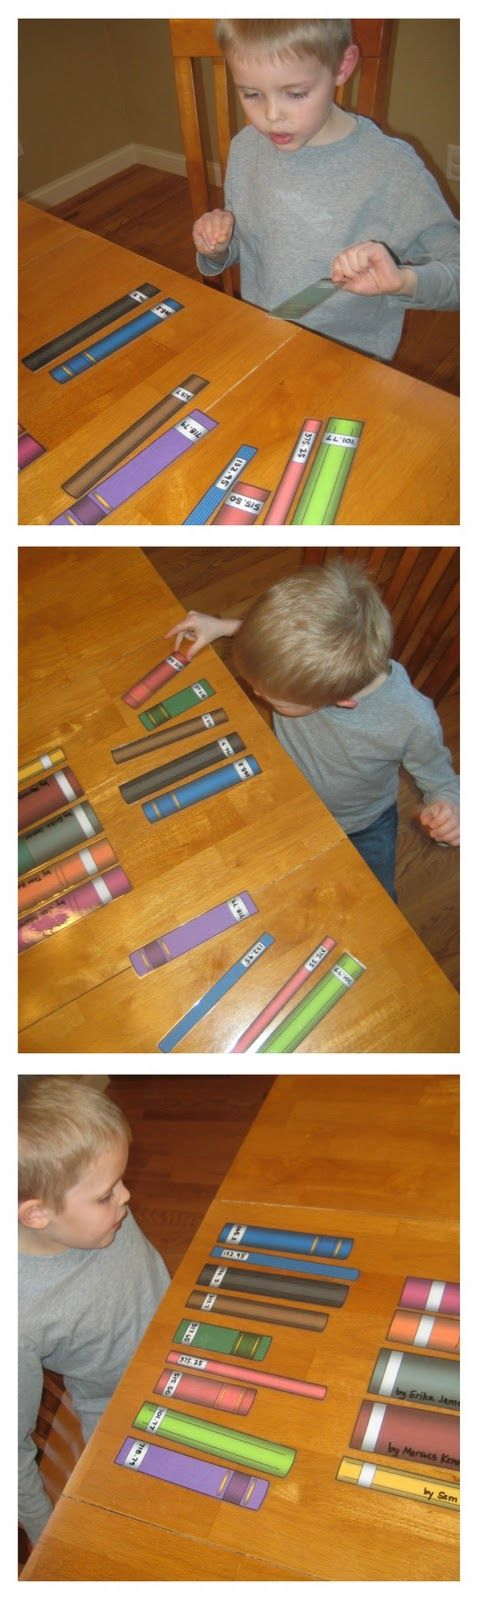 Let's Play Library! [An Alphabetizing & Sequencing Activity]